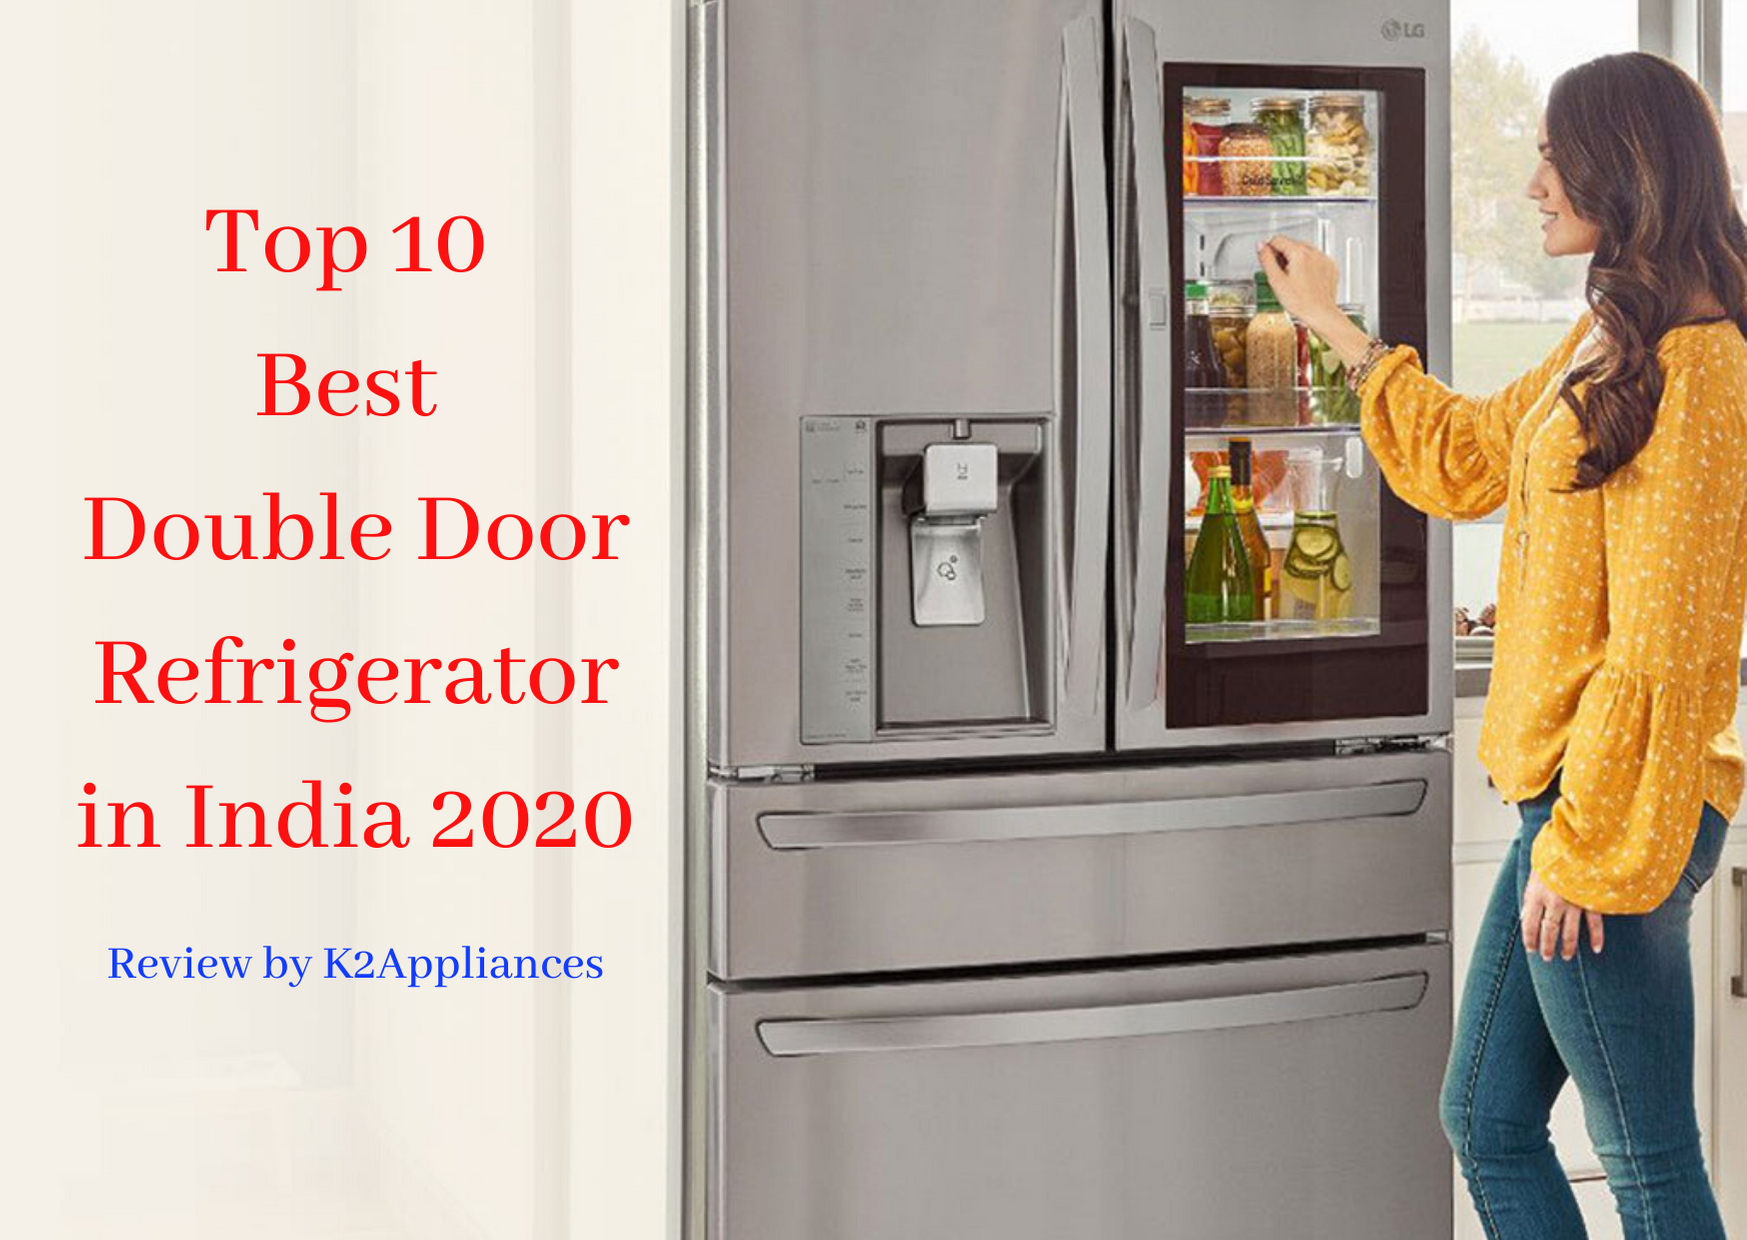 Top 10 Best Double Door Refrigerator in India 2020